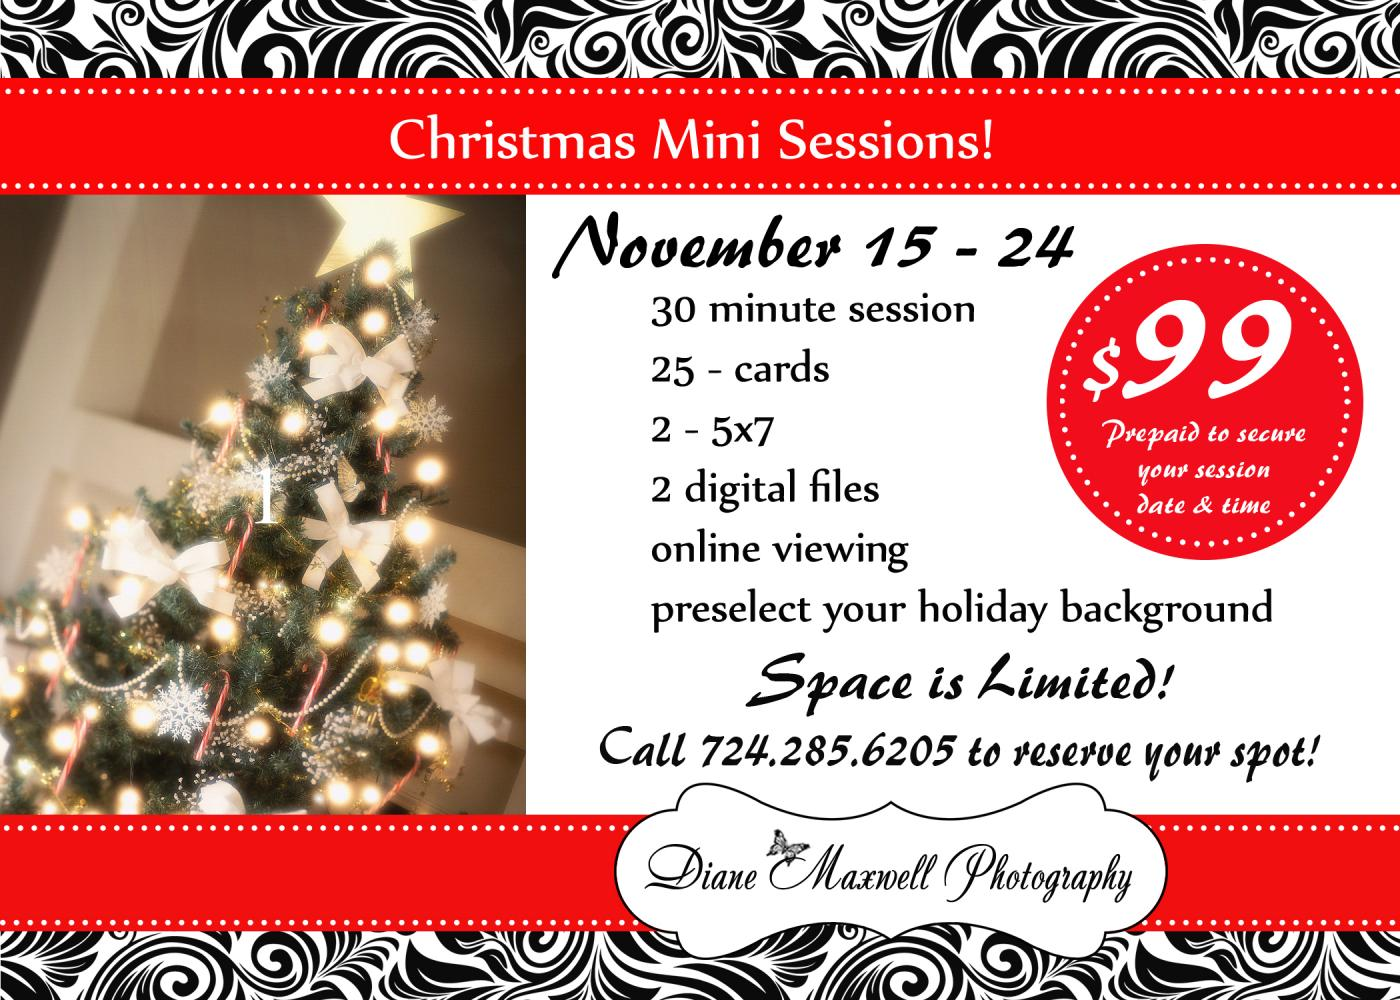 Christmas Mini Sessions from November 15 - 24